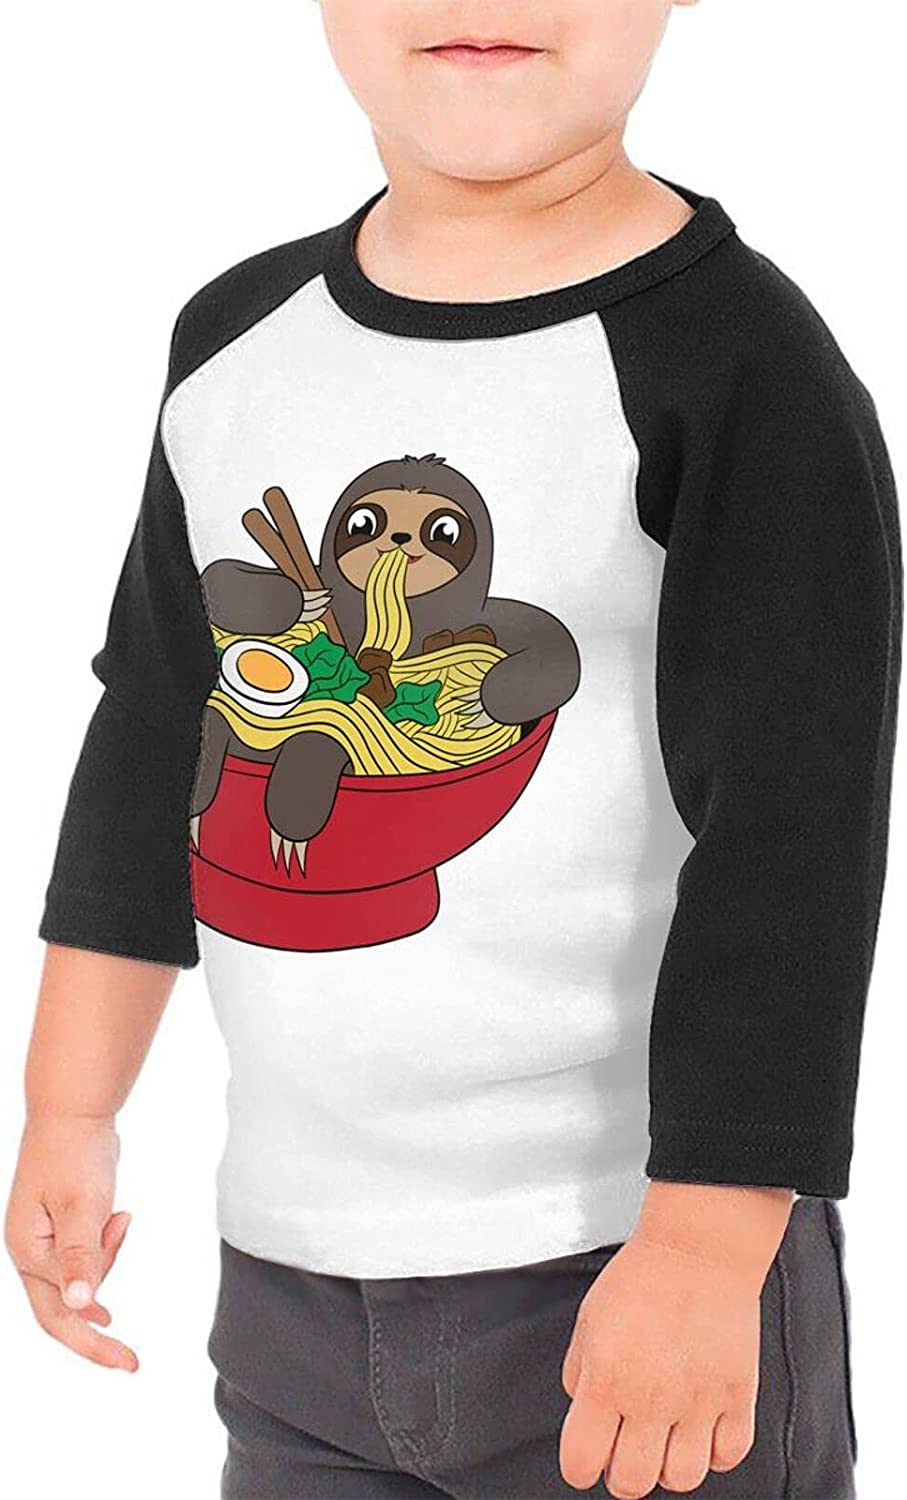 Sloth Ramen Noodles T-Shirts Novelty for Girls Tees with Cool Designs